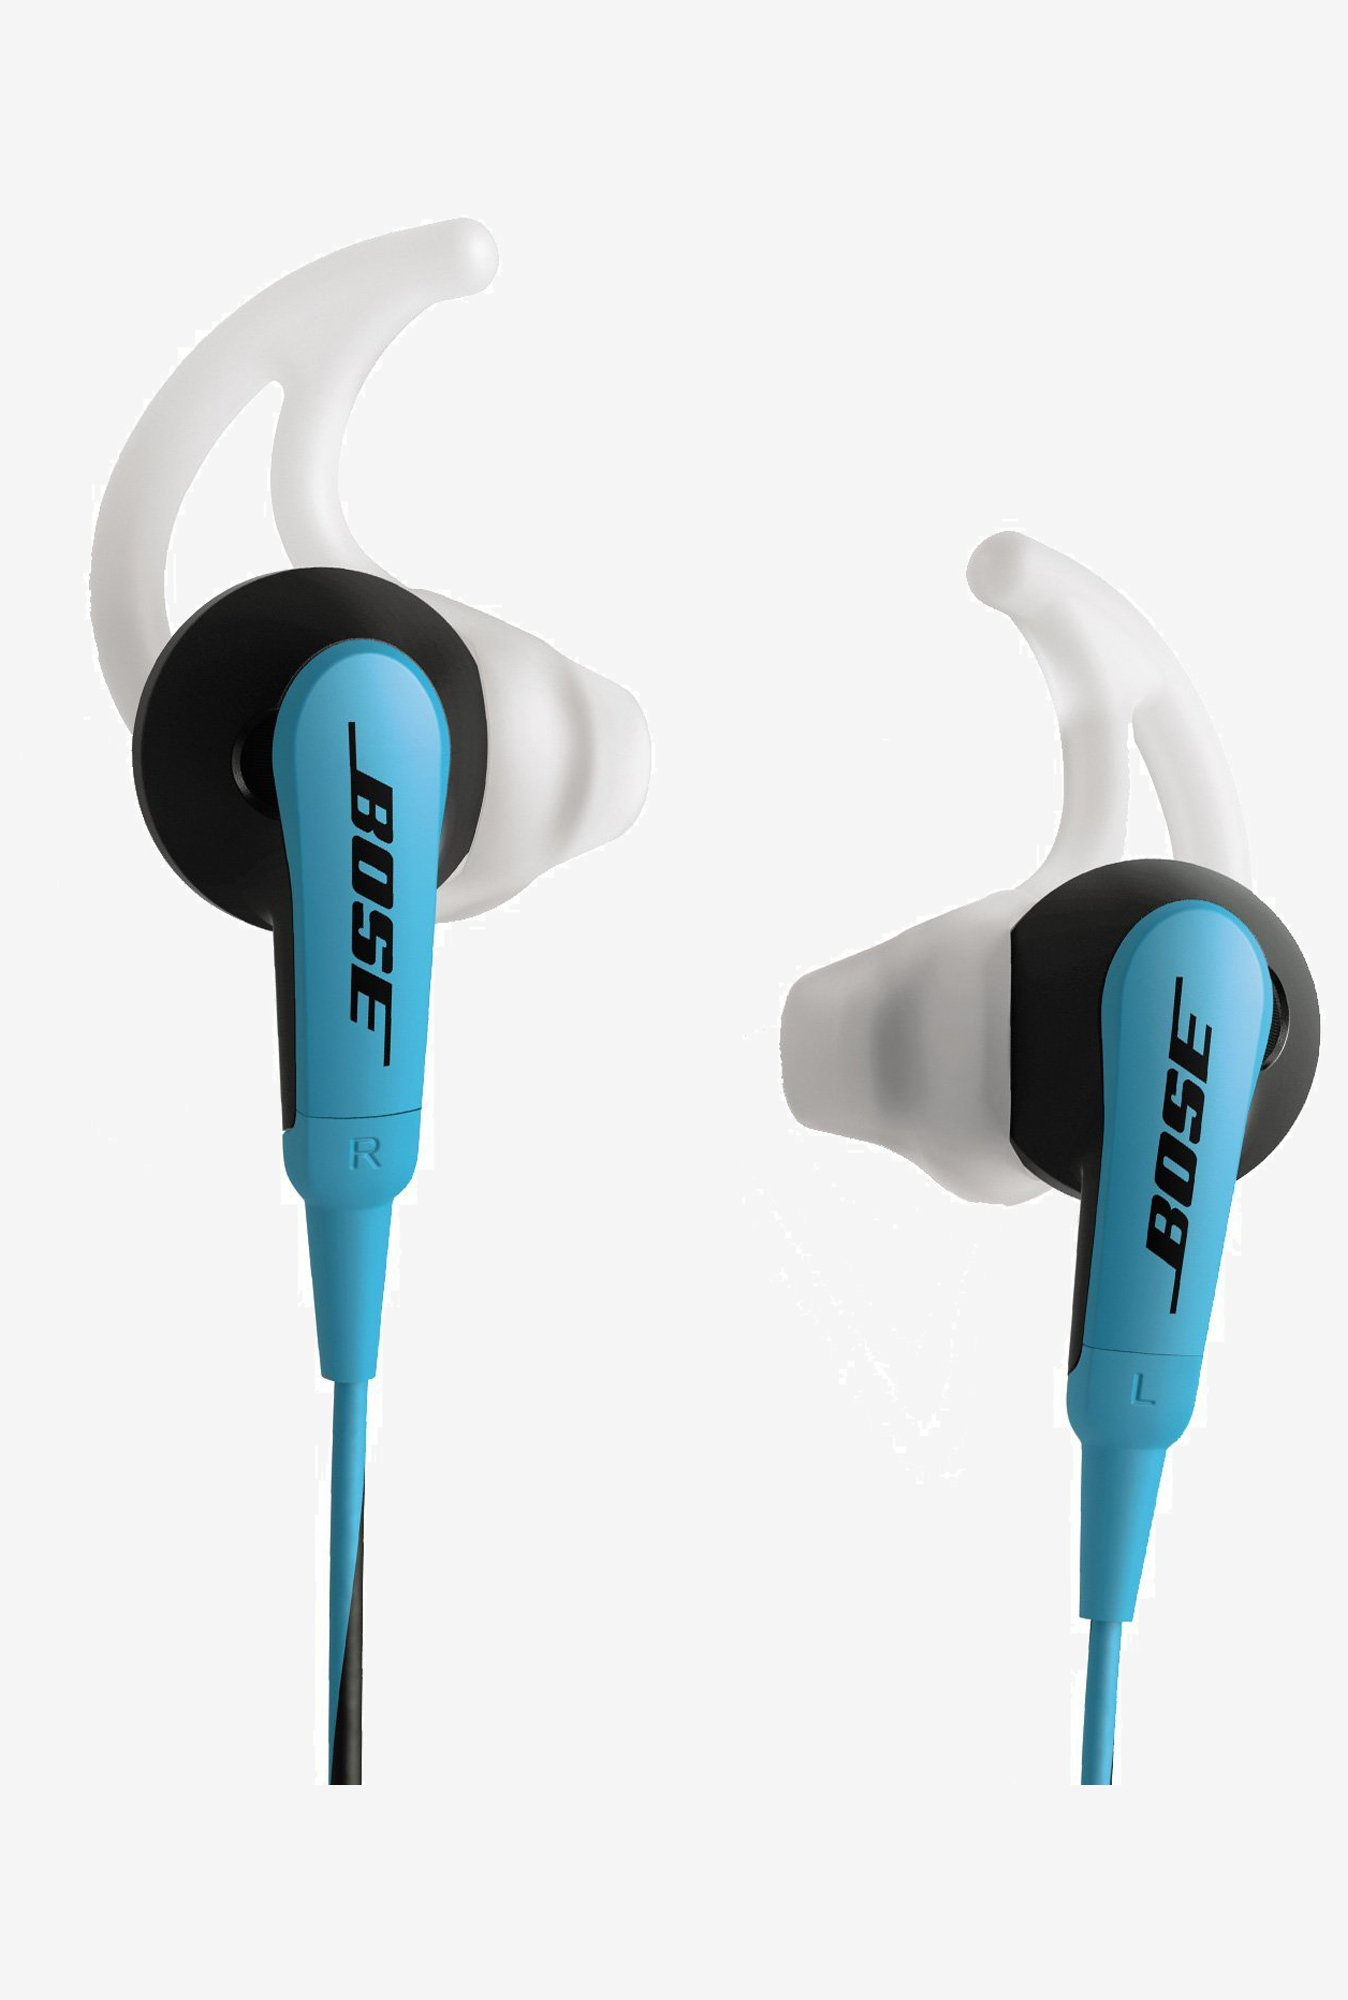 Bose 717534-0010 SoundSport In The Ear Headphones (Blue)